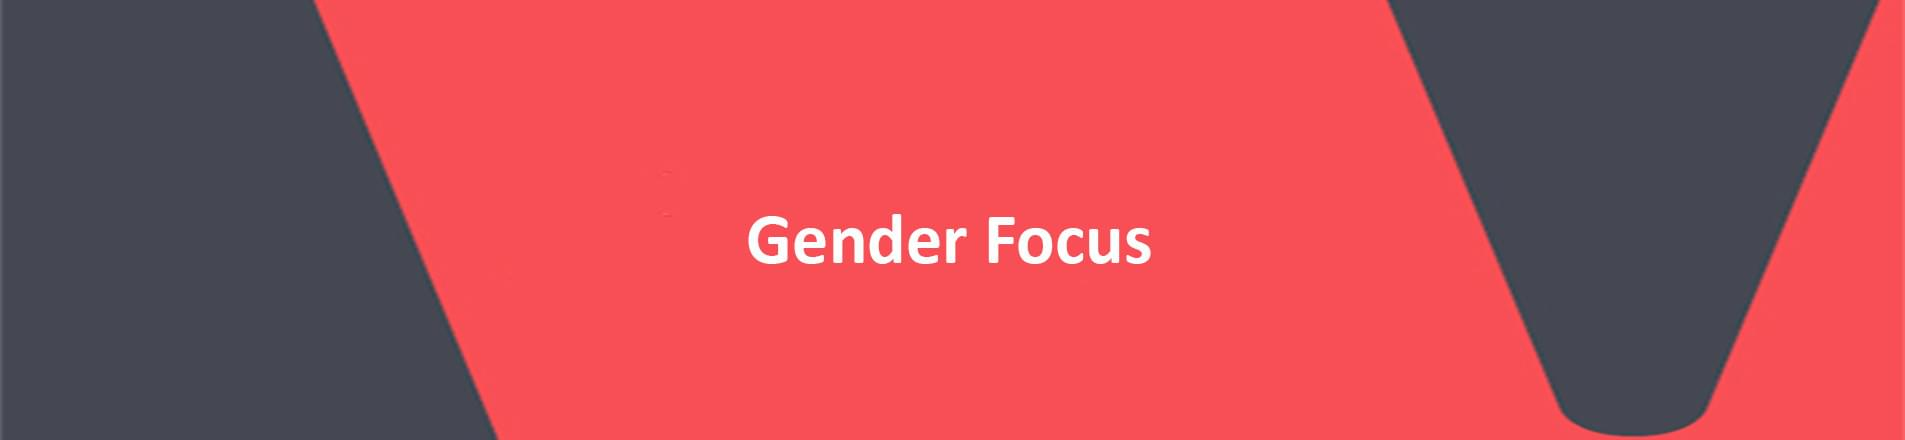 """VERCIDA branded logo which says """"Gender Focus"""". Red banner with white letters."""